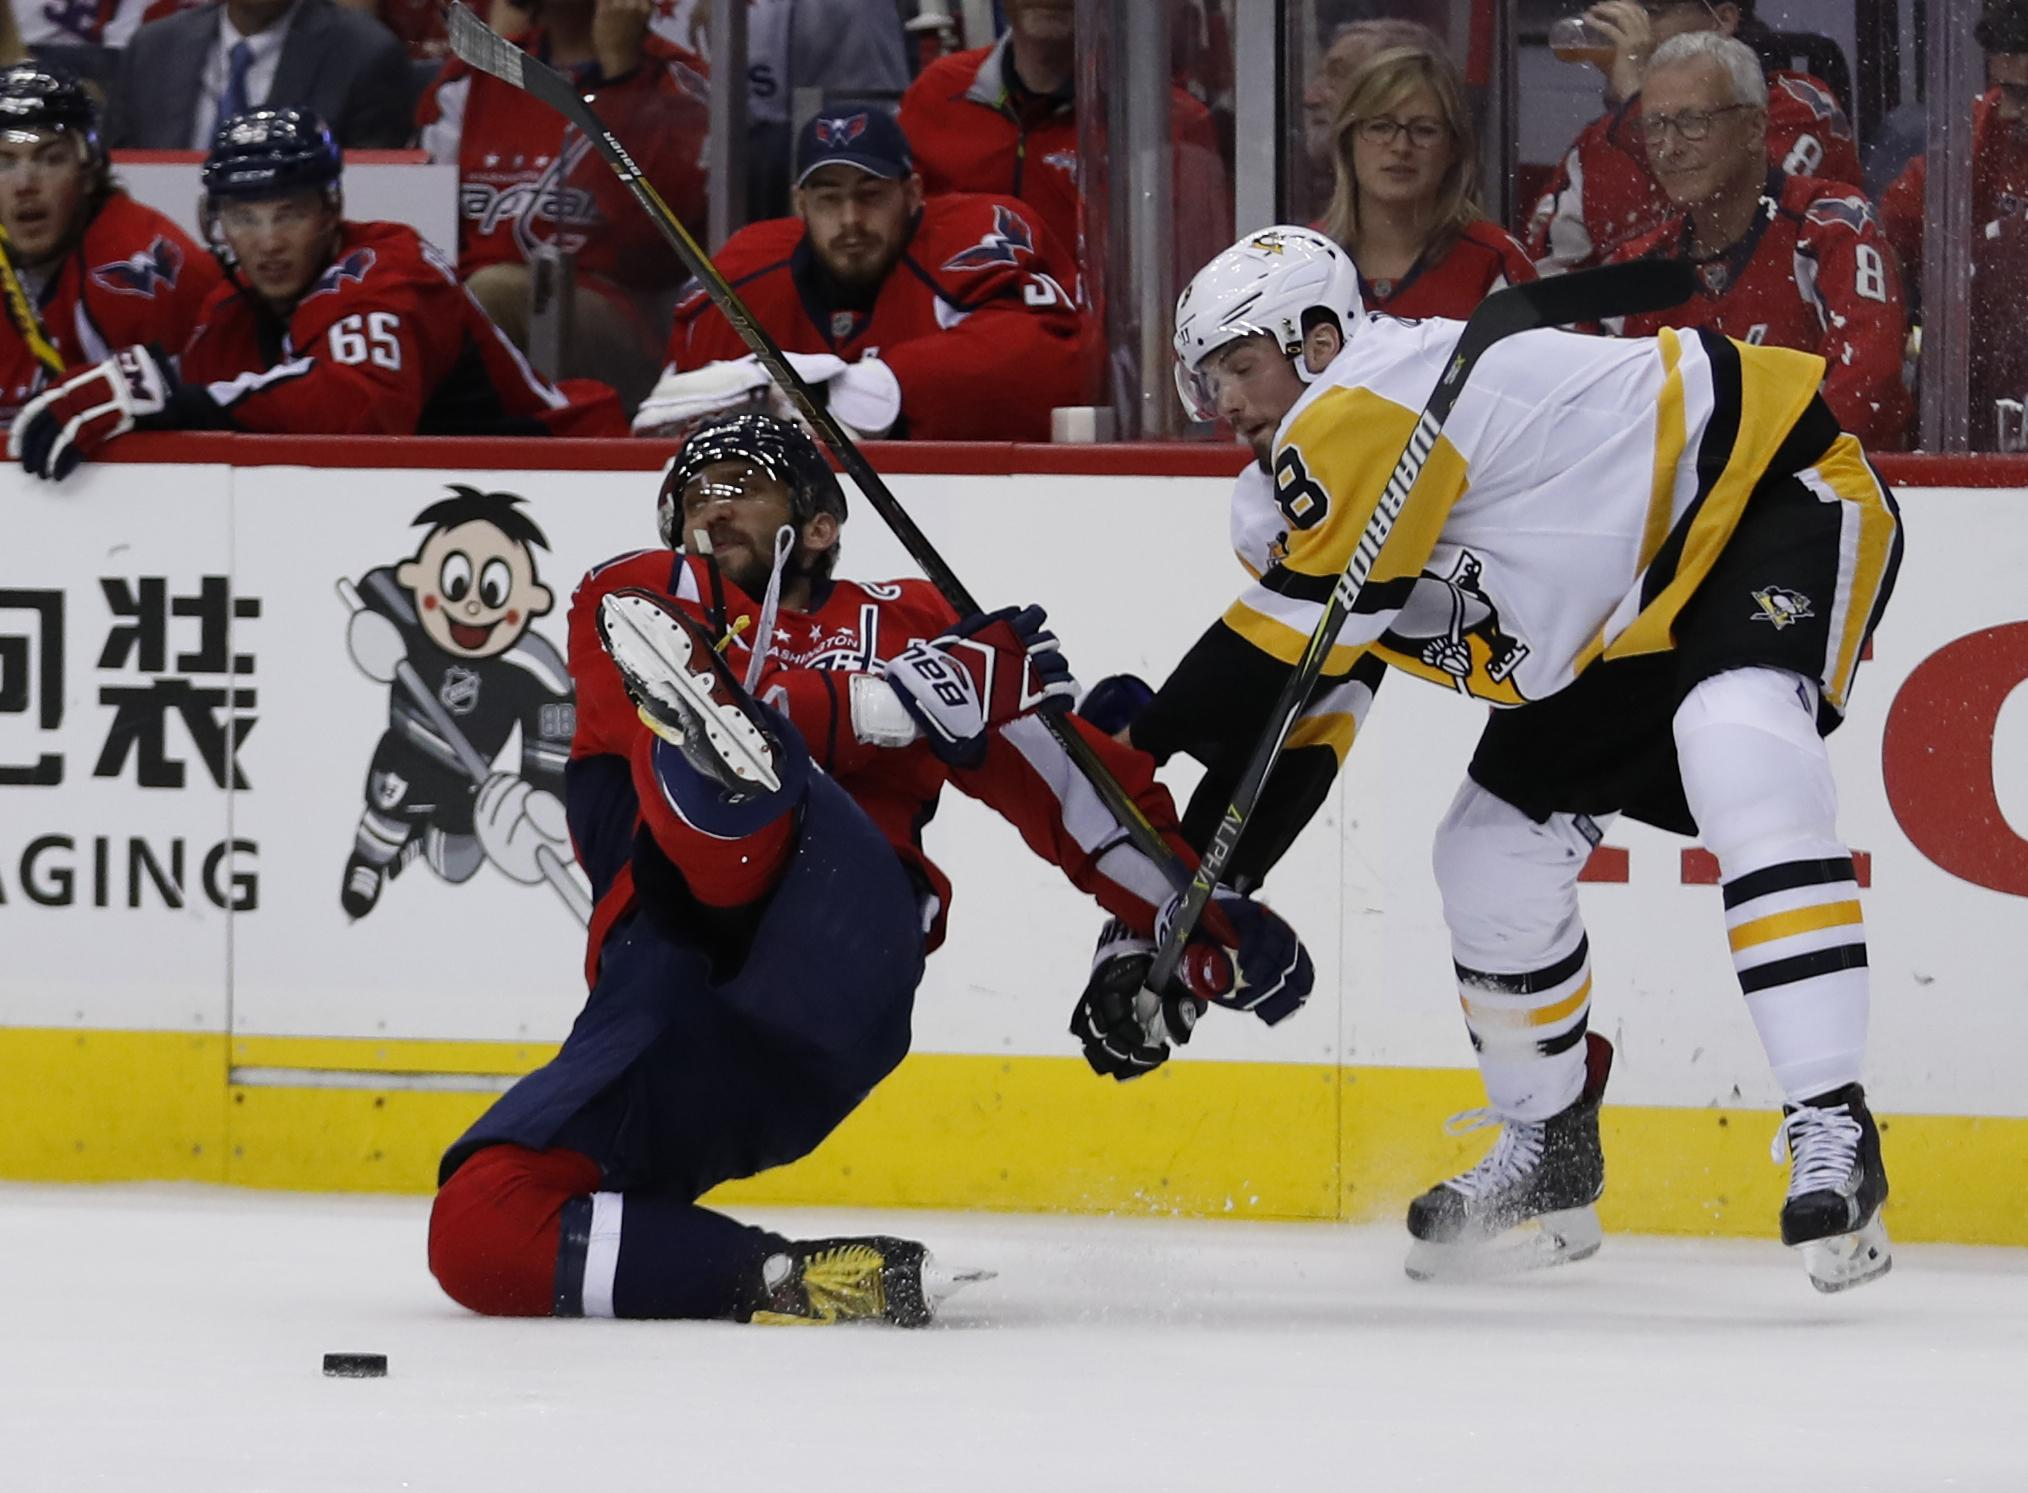 Caps  Alex Ovechkin finished playoffs with lower-body injury  dfa4720ac91